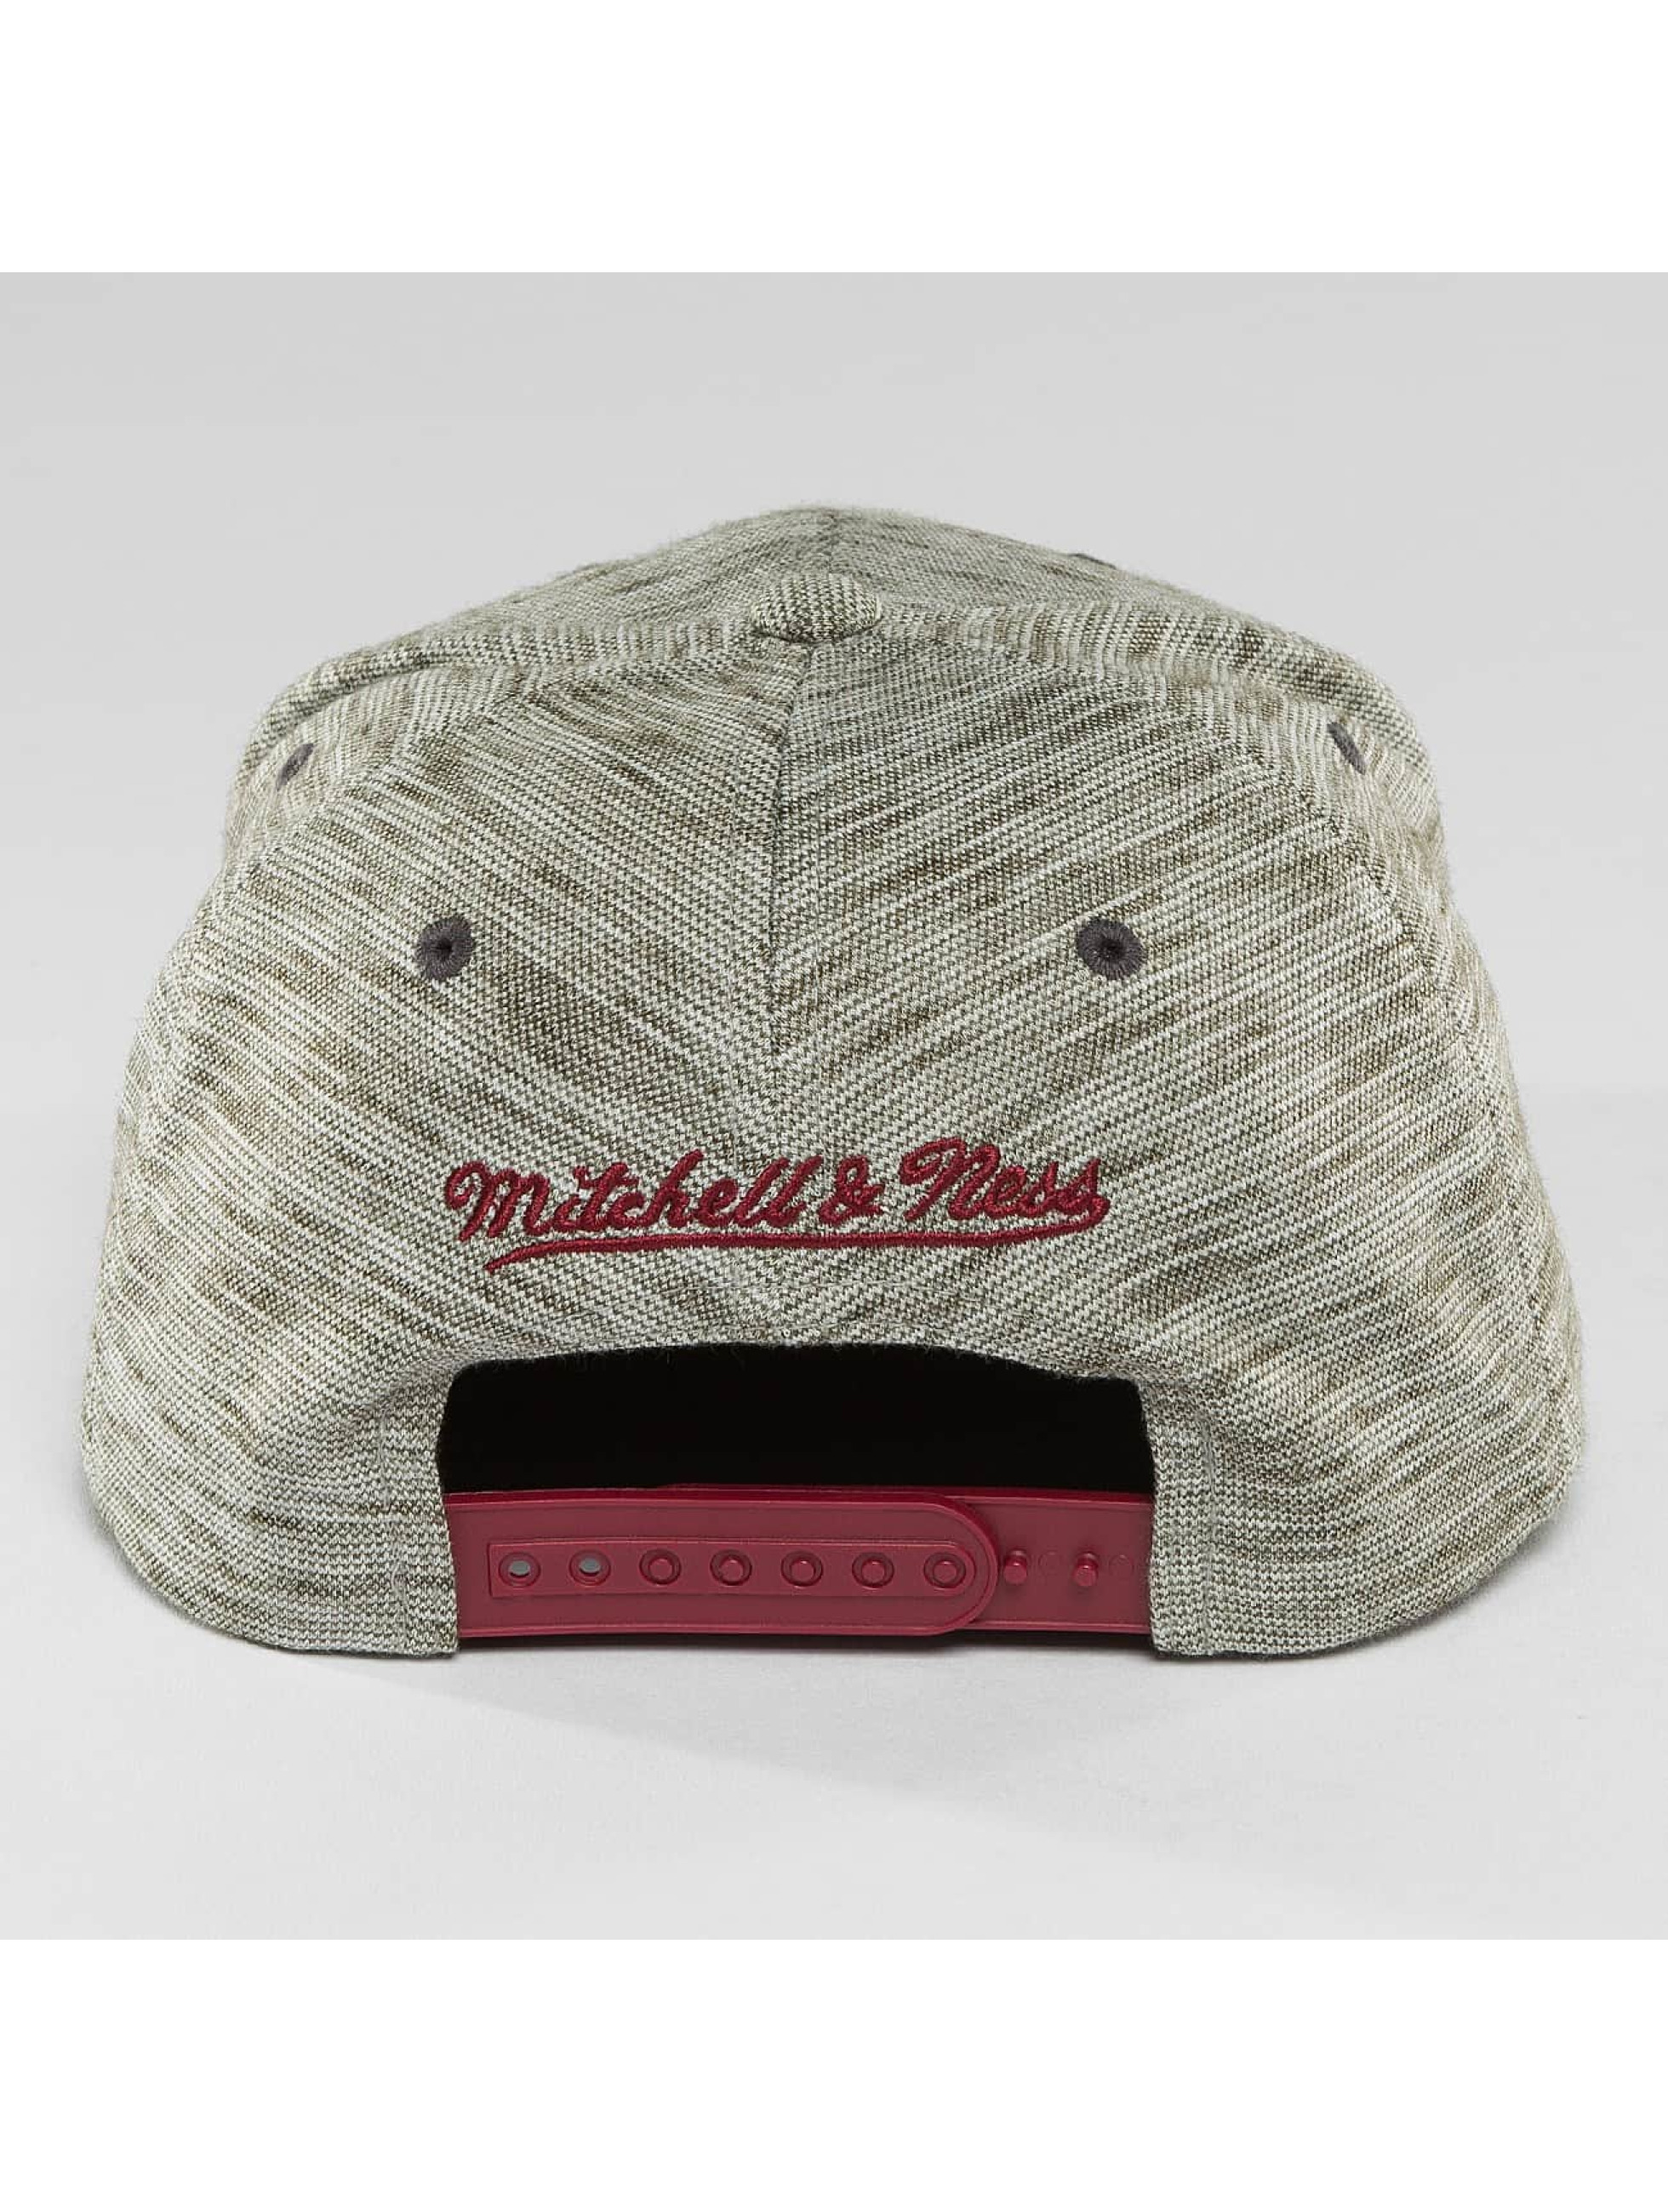 Mitchell & Ness Casquette Snapback & Strapback NBA Brushed Melange Cleveland Cavaliers gris